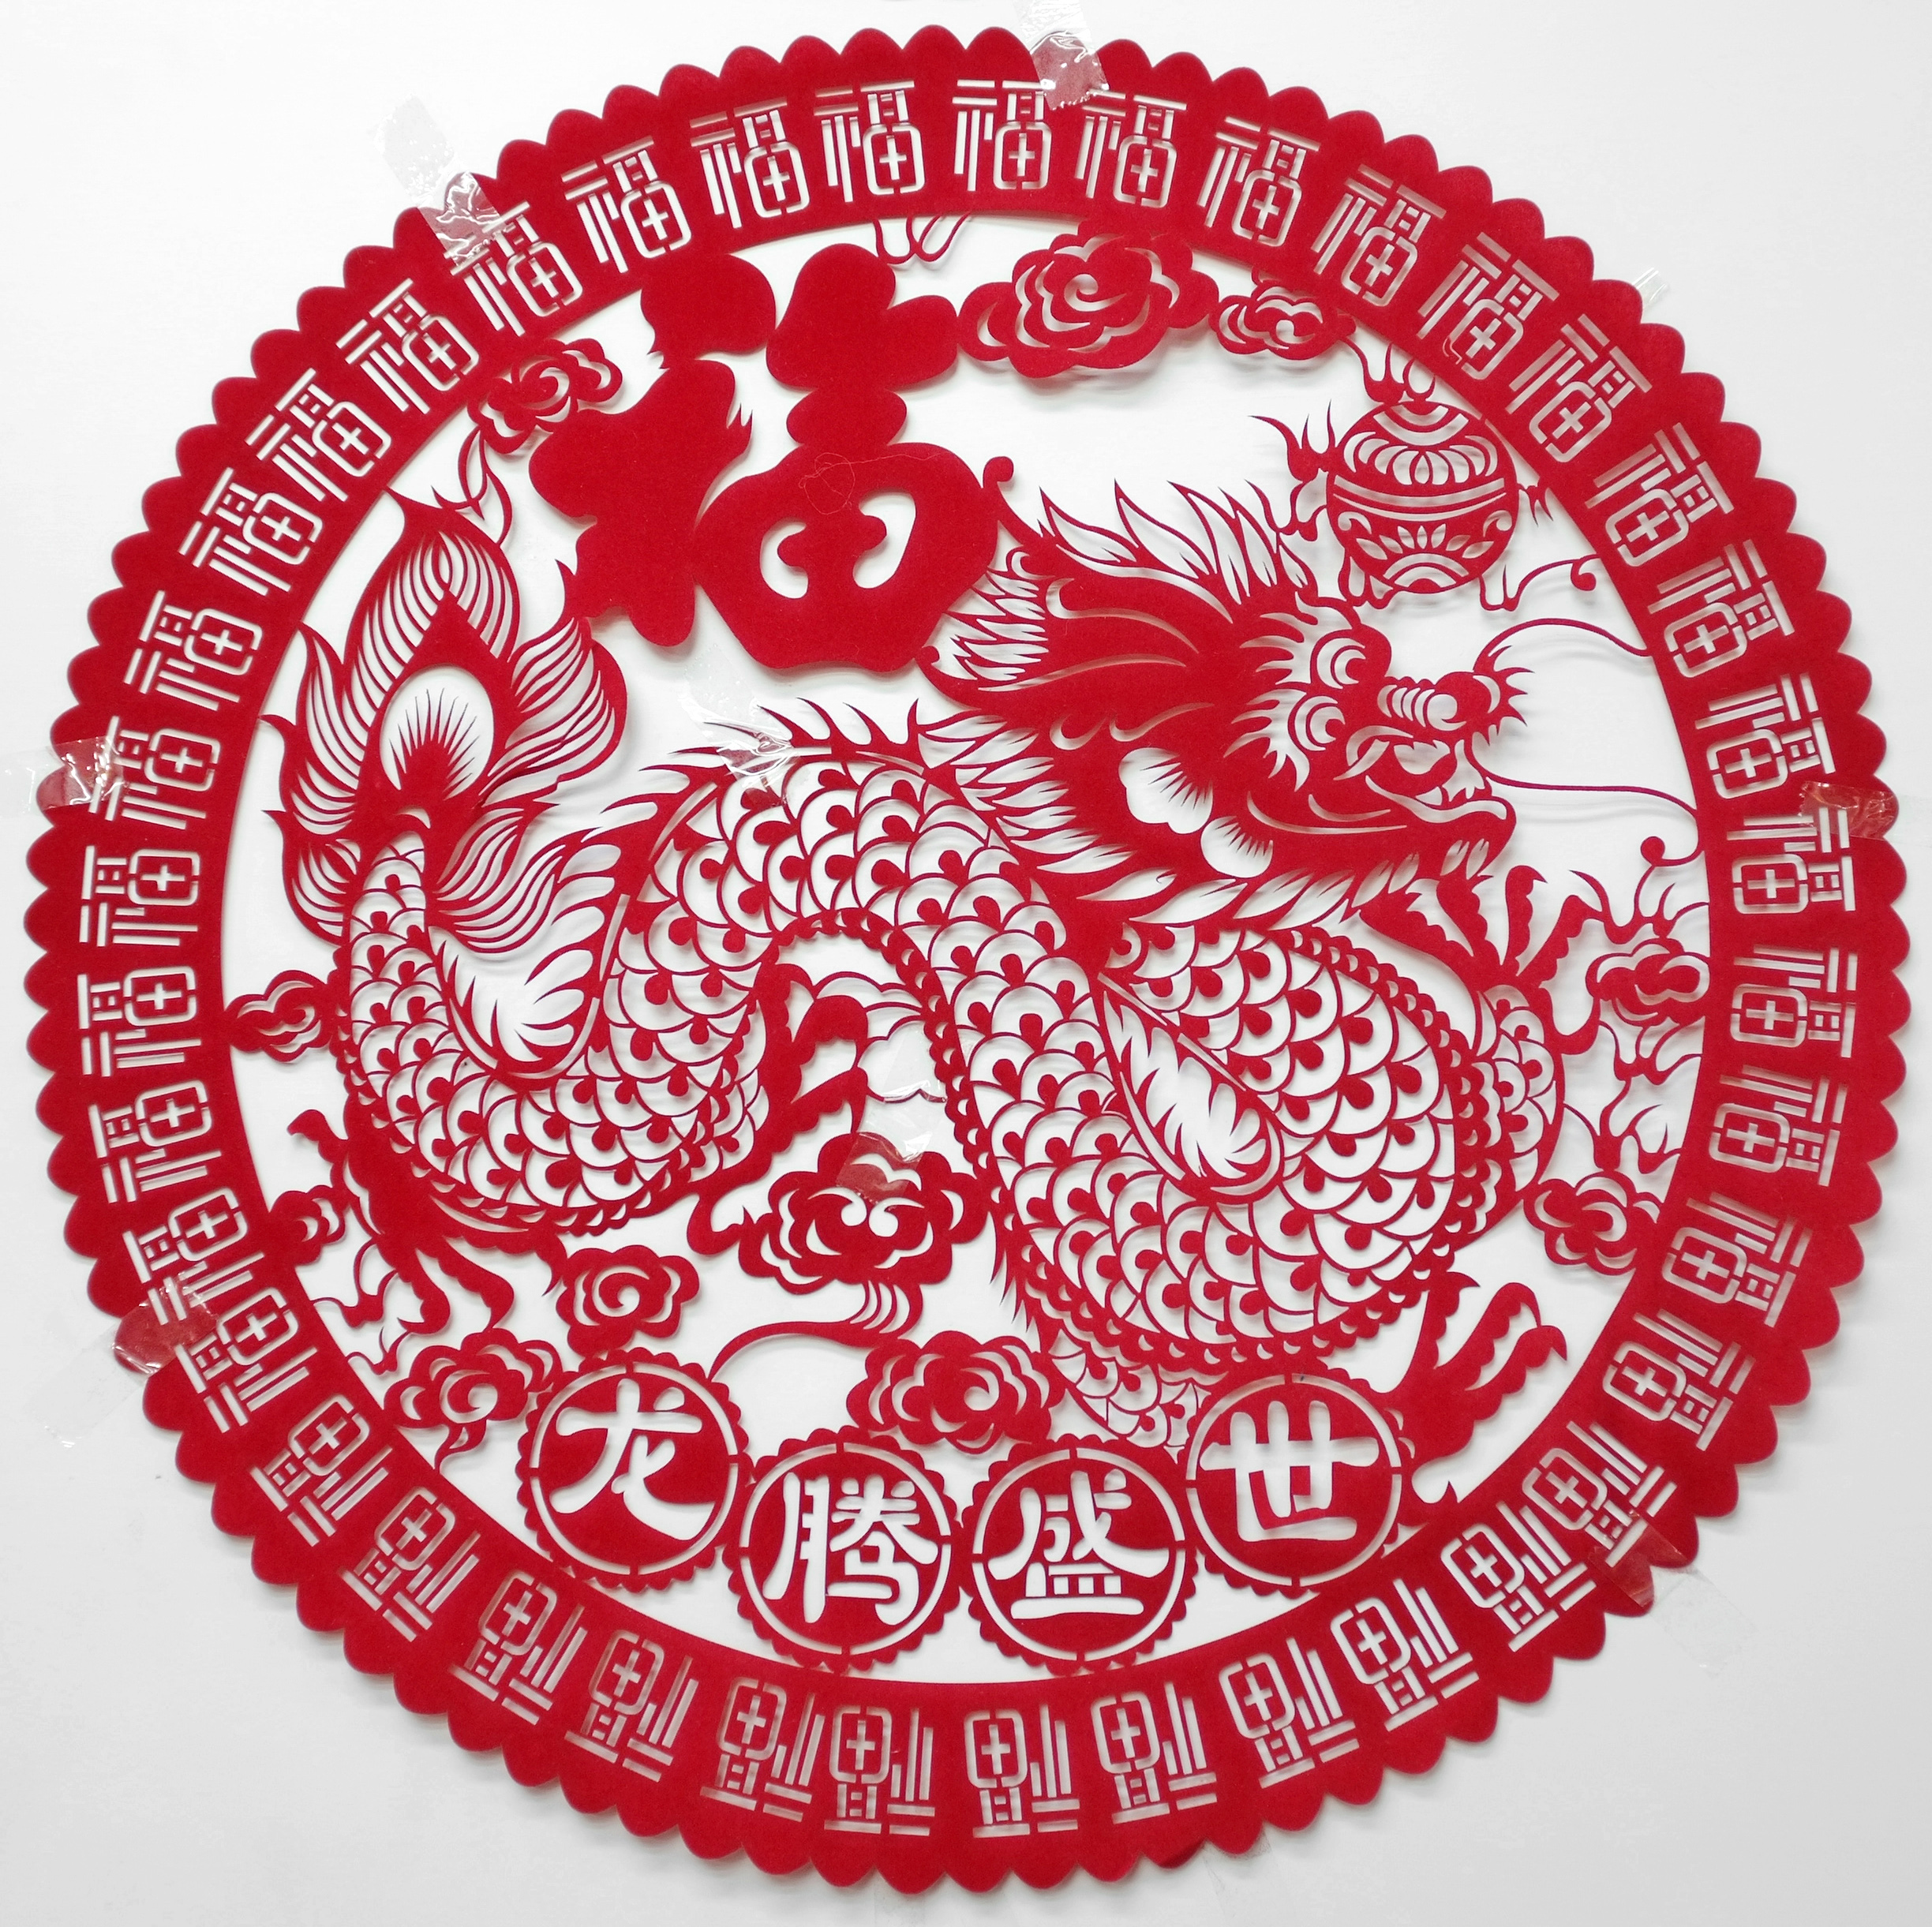 Riding the Dragon: 2012 predictions from Chinese masters ...